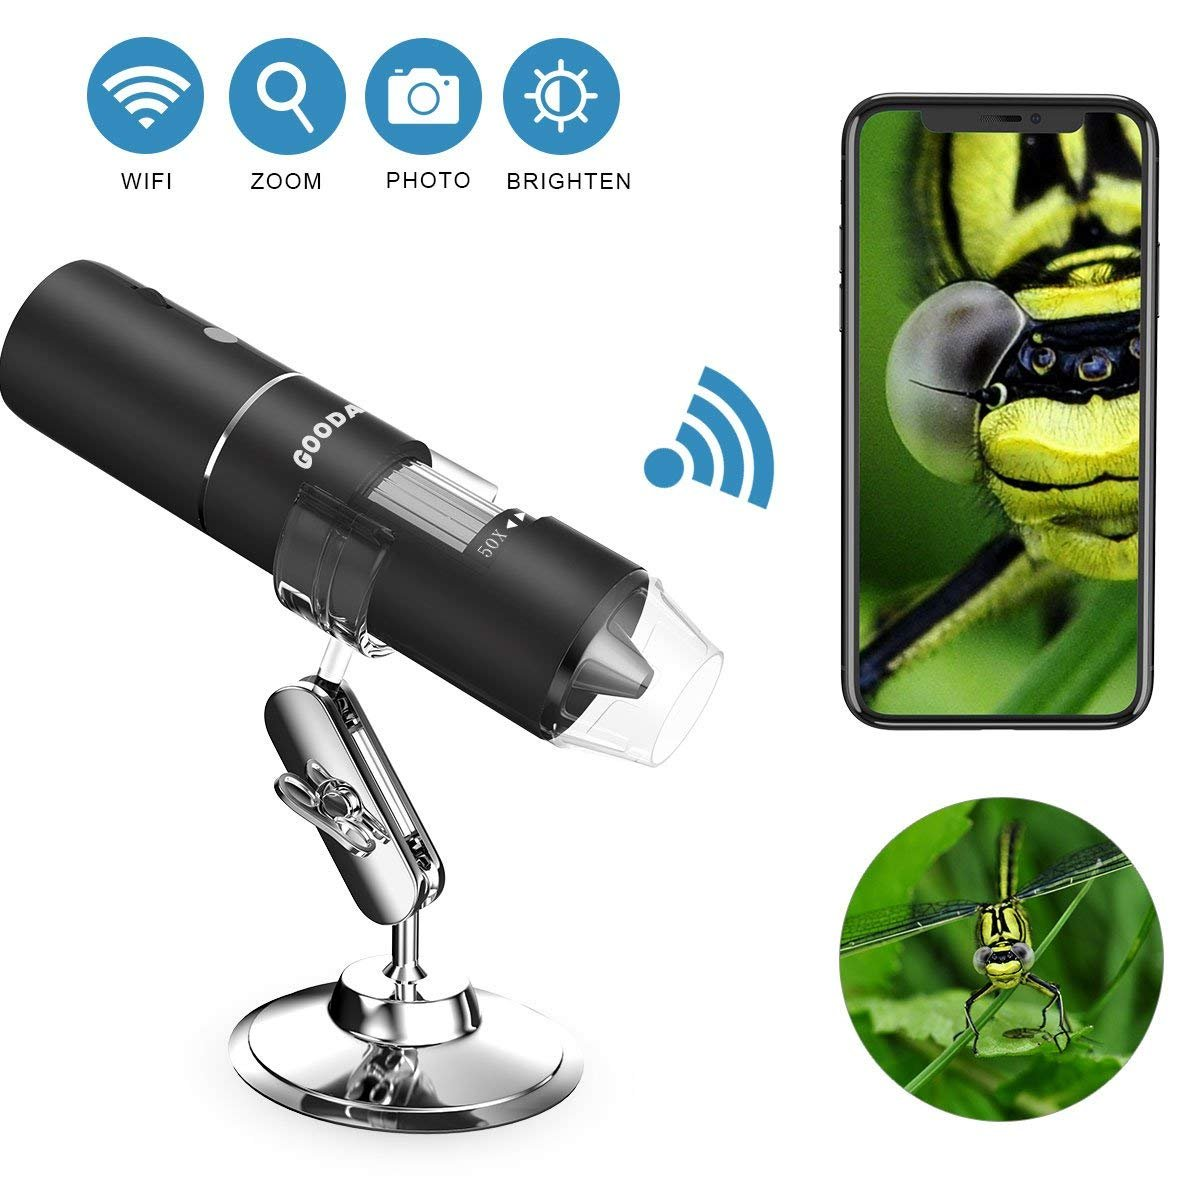 Wifi Digital Microscope, Goodan Wireless Microscope, Portable 50 to 1000X Black Updated Magnification Endoscope with Mini 8 Led Inspection Camera for Iphone IOS and Android Smartphone, Ipad by goodan